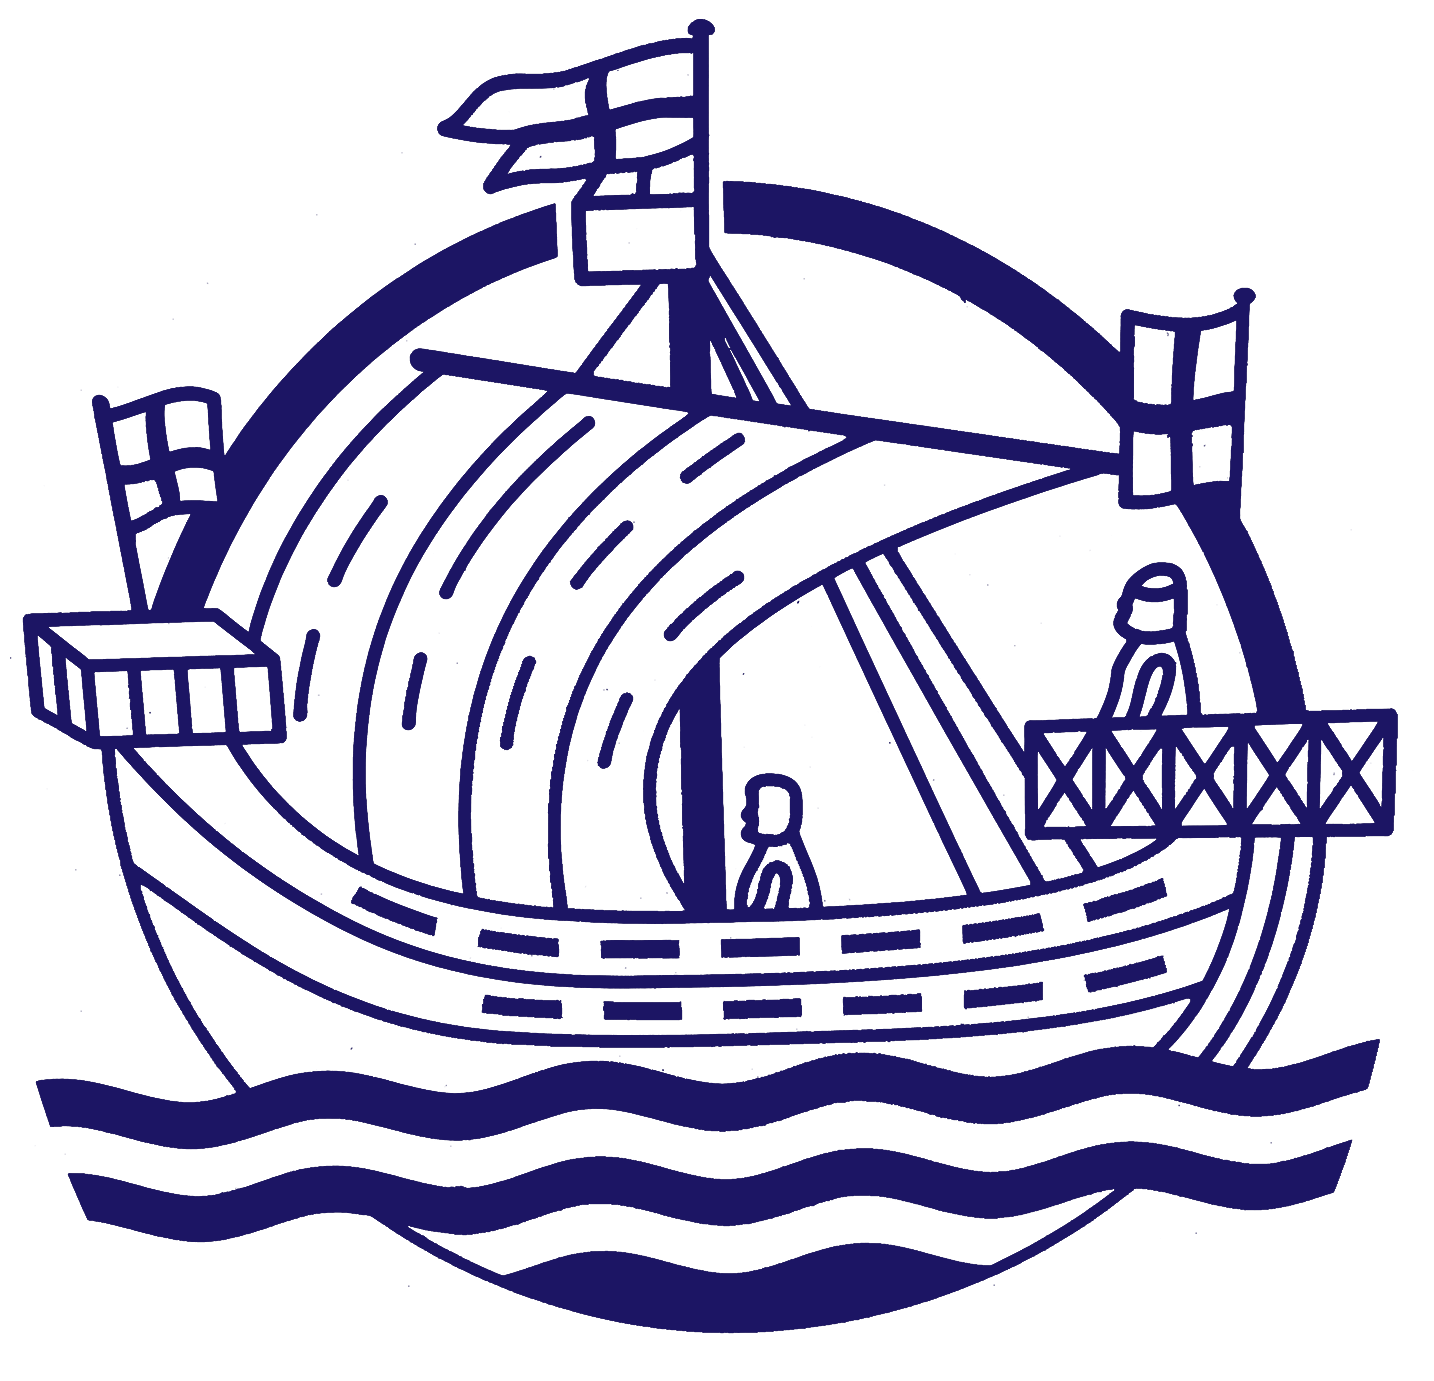 rye hospital boat logo